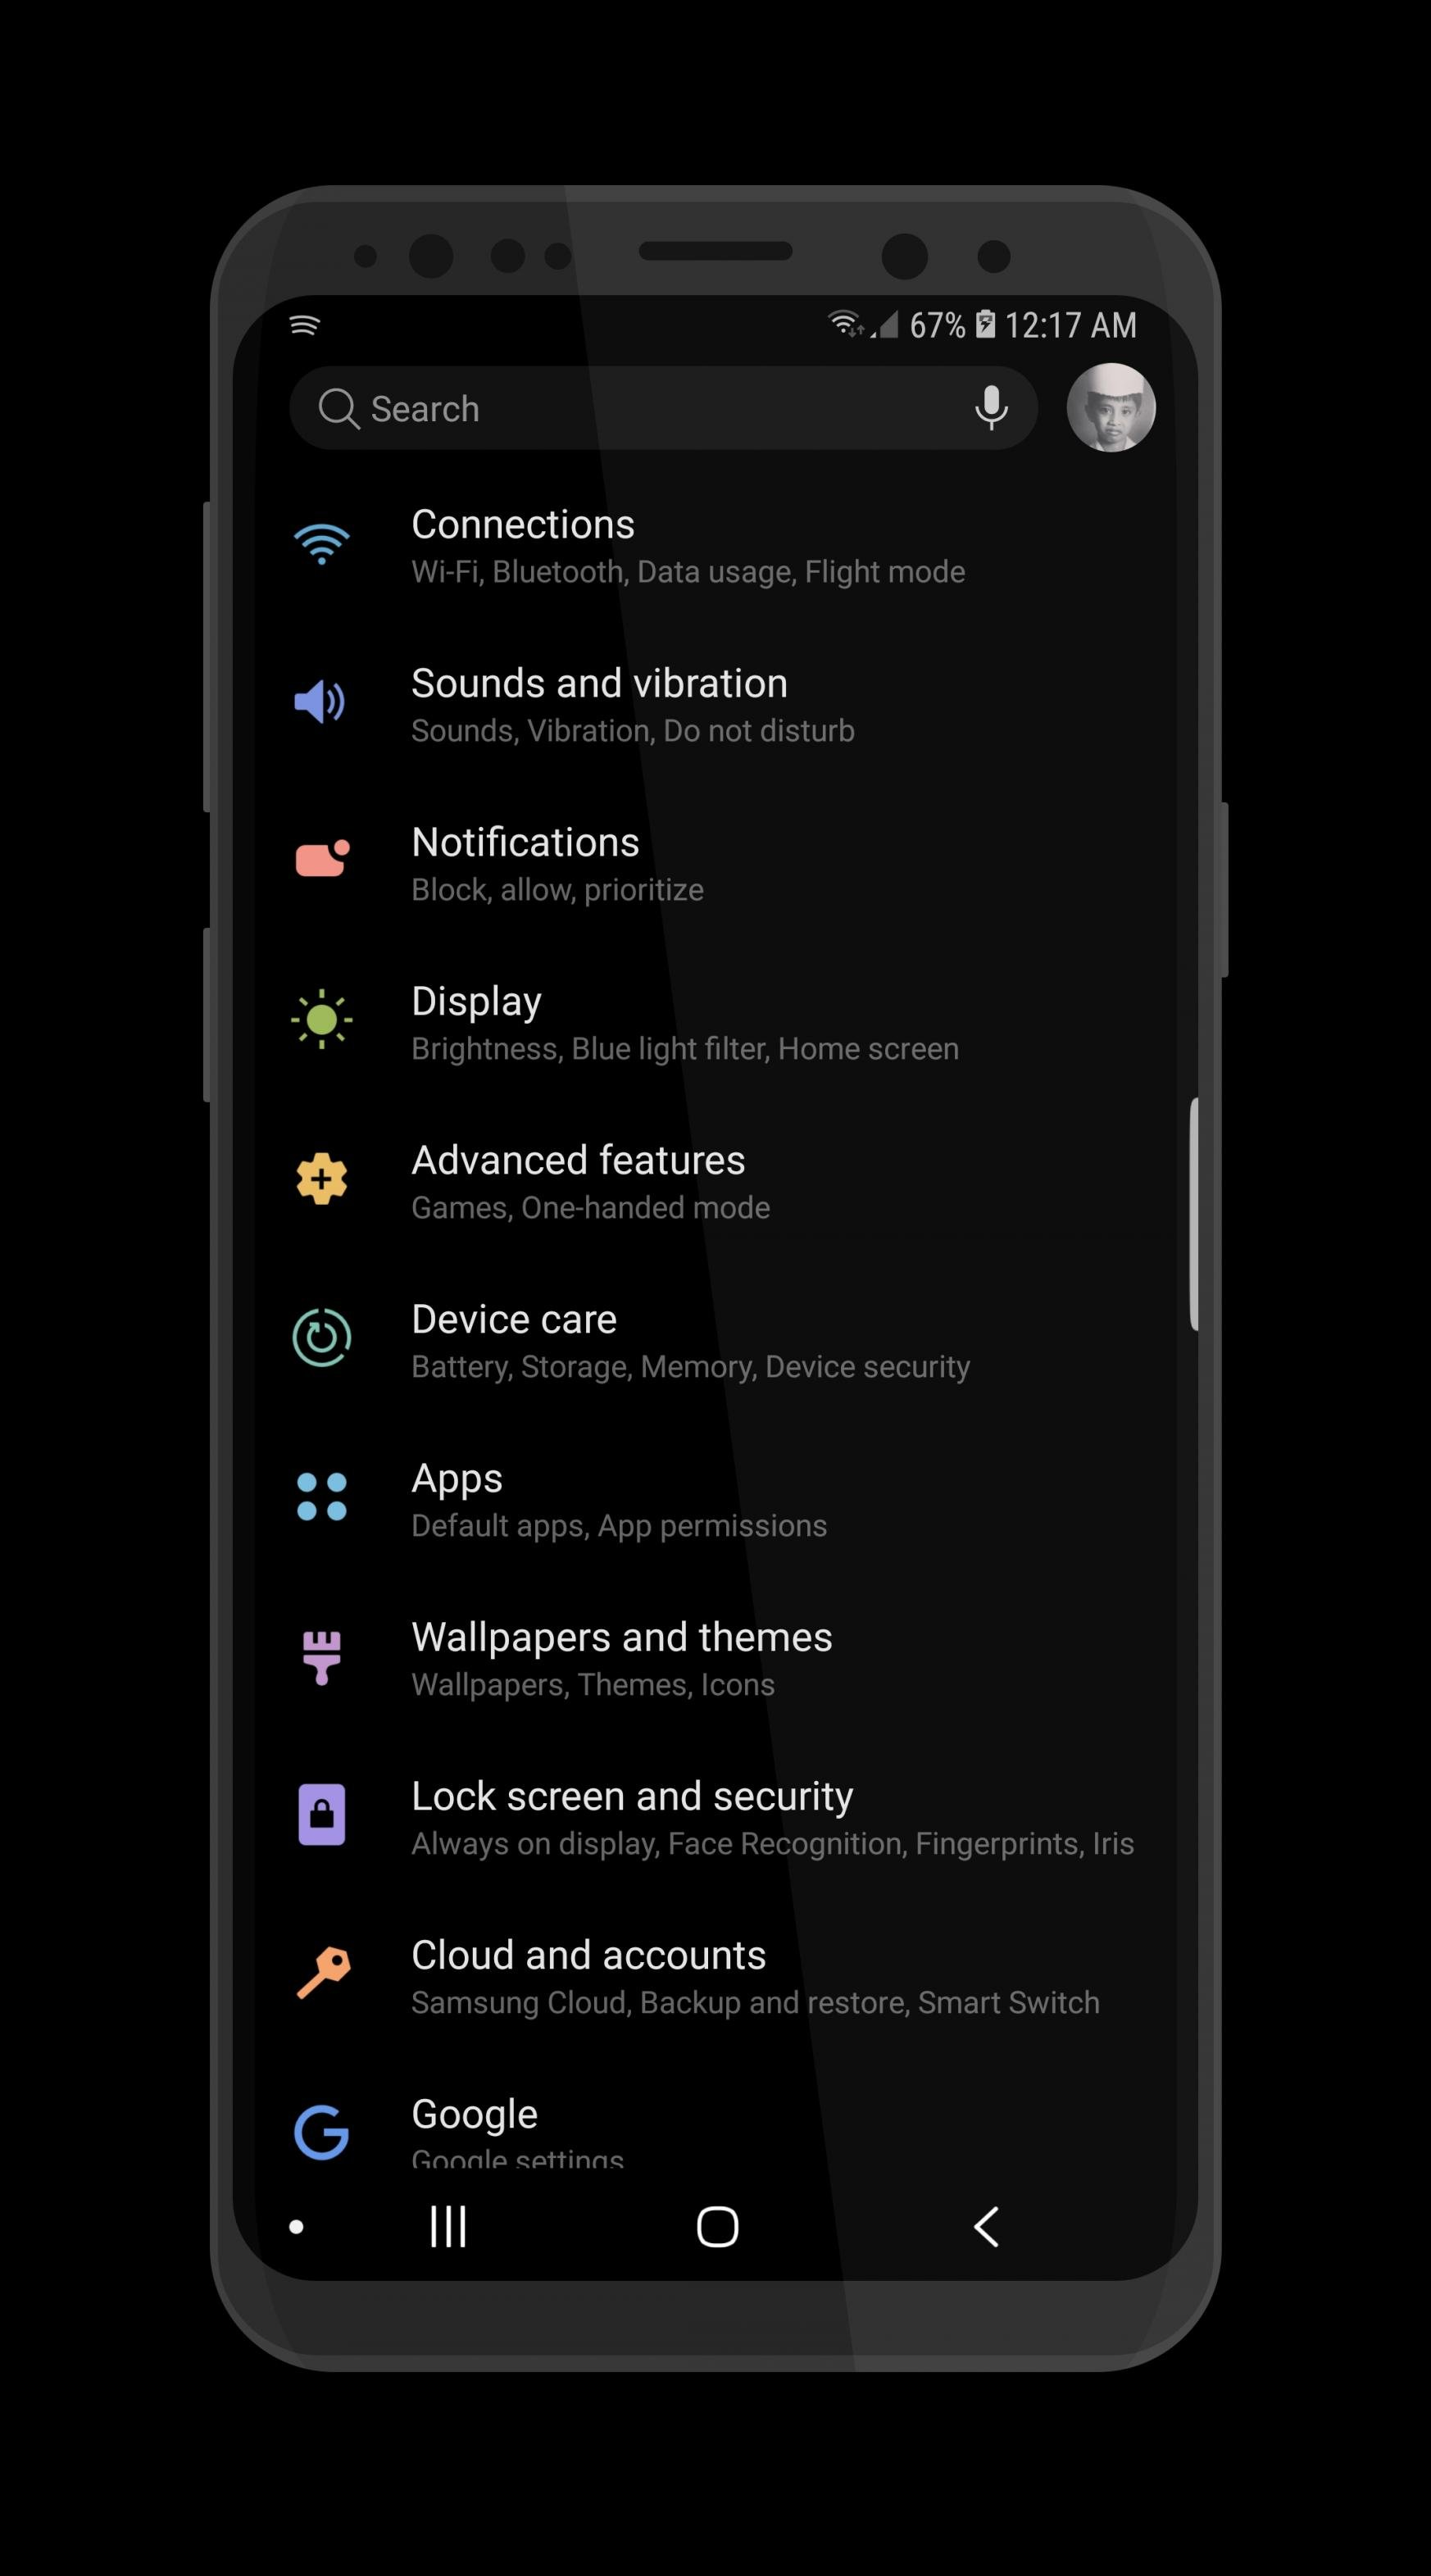 Install Samsung Experience 10 Theme on Samsung Galaxy S9 and Galaxy S8